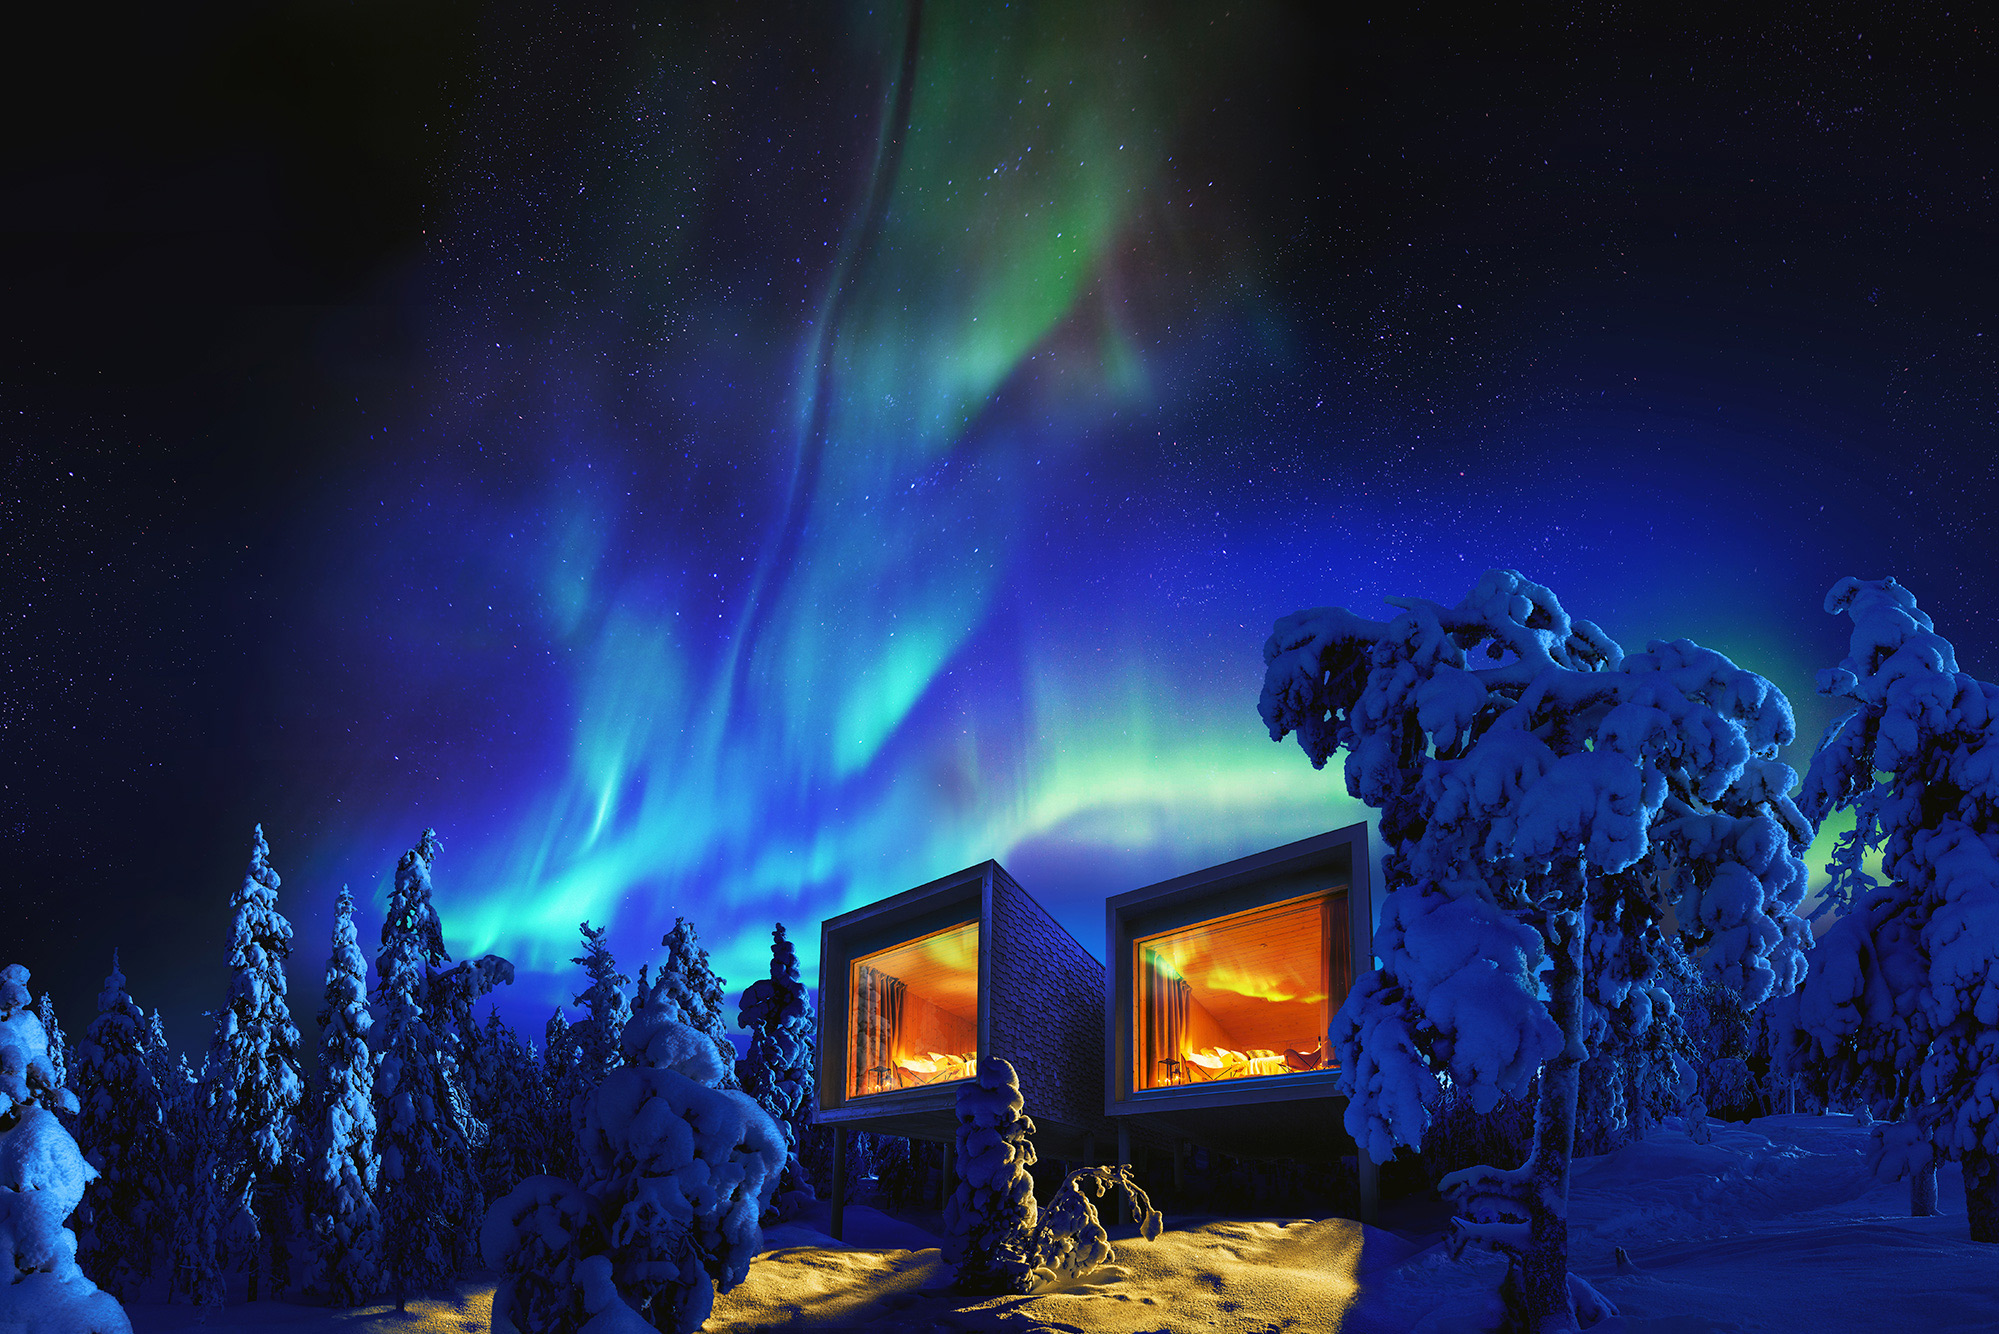 Arctic-TreeHouse-Hotel-Northern-Lights-1999x1334px